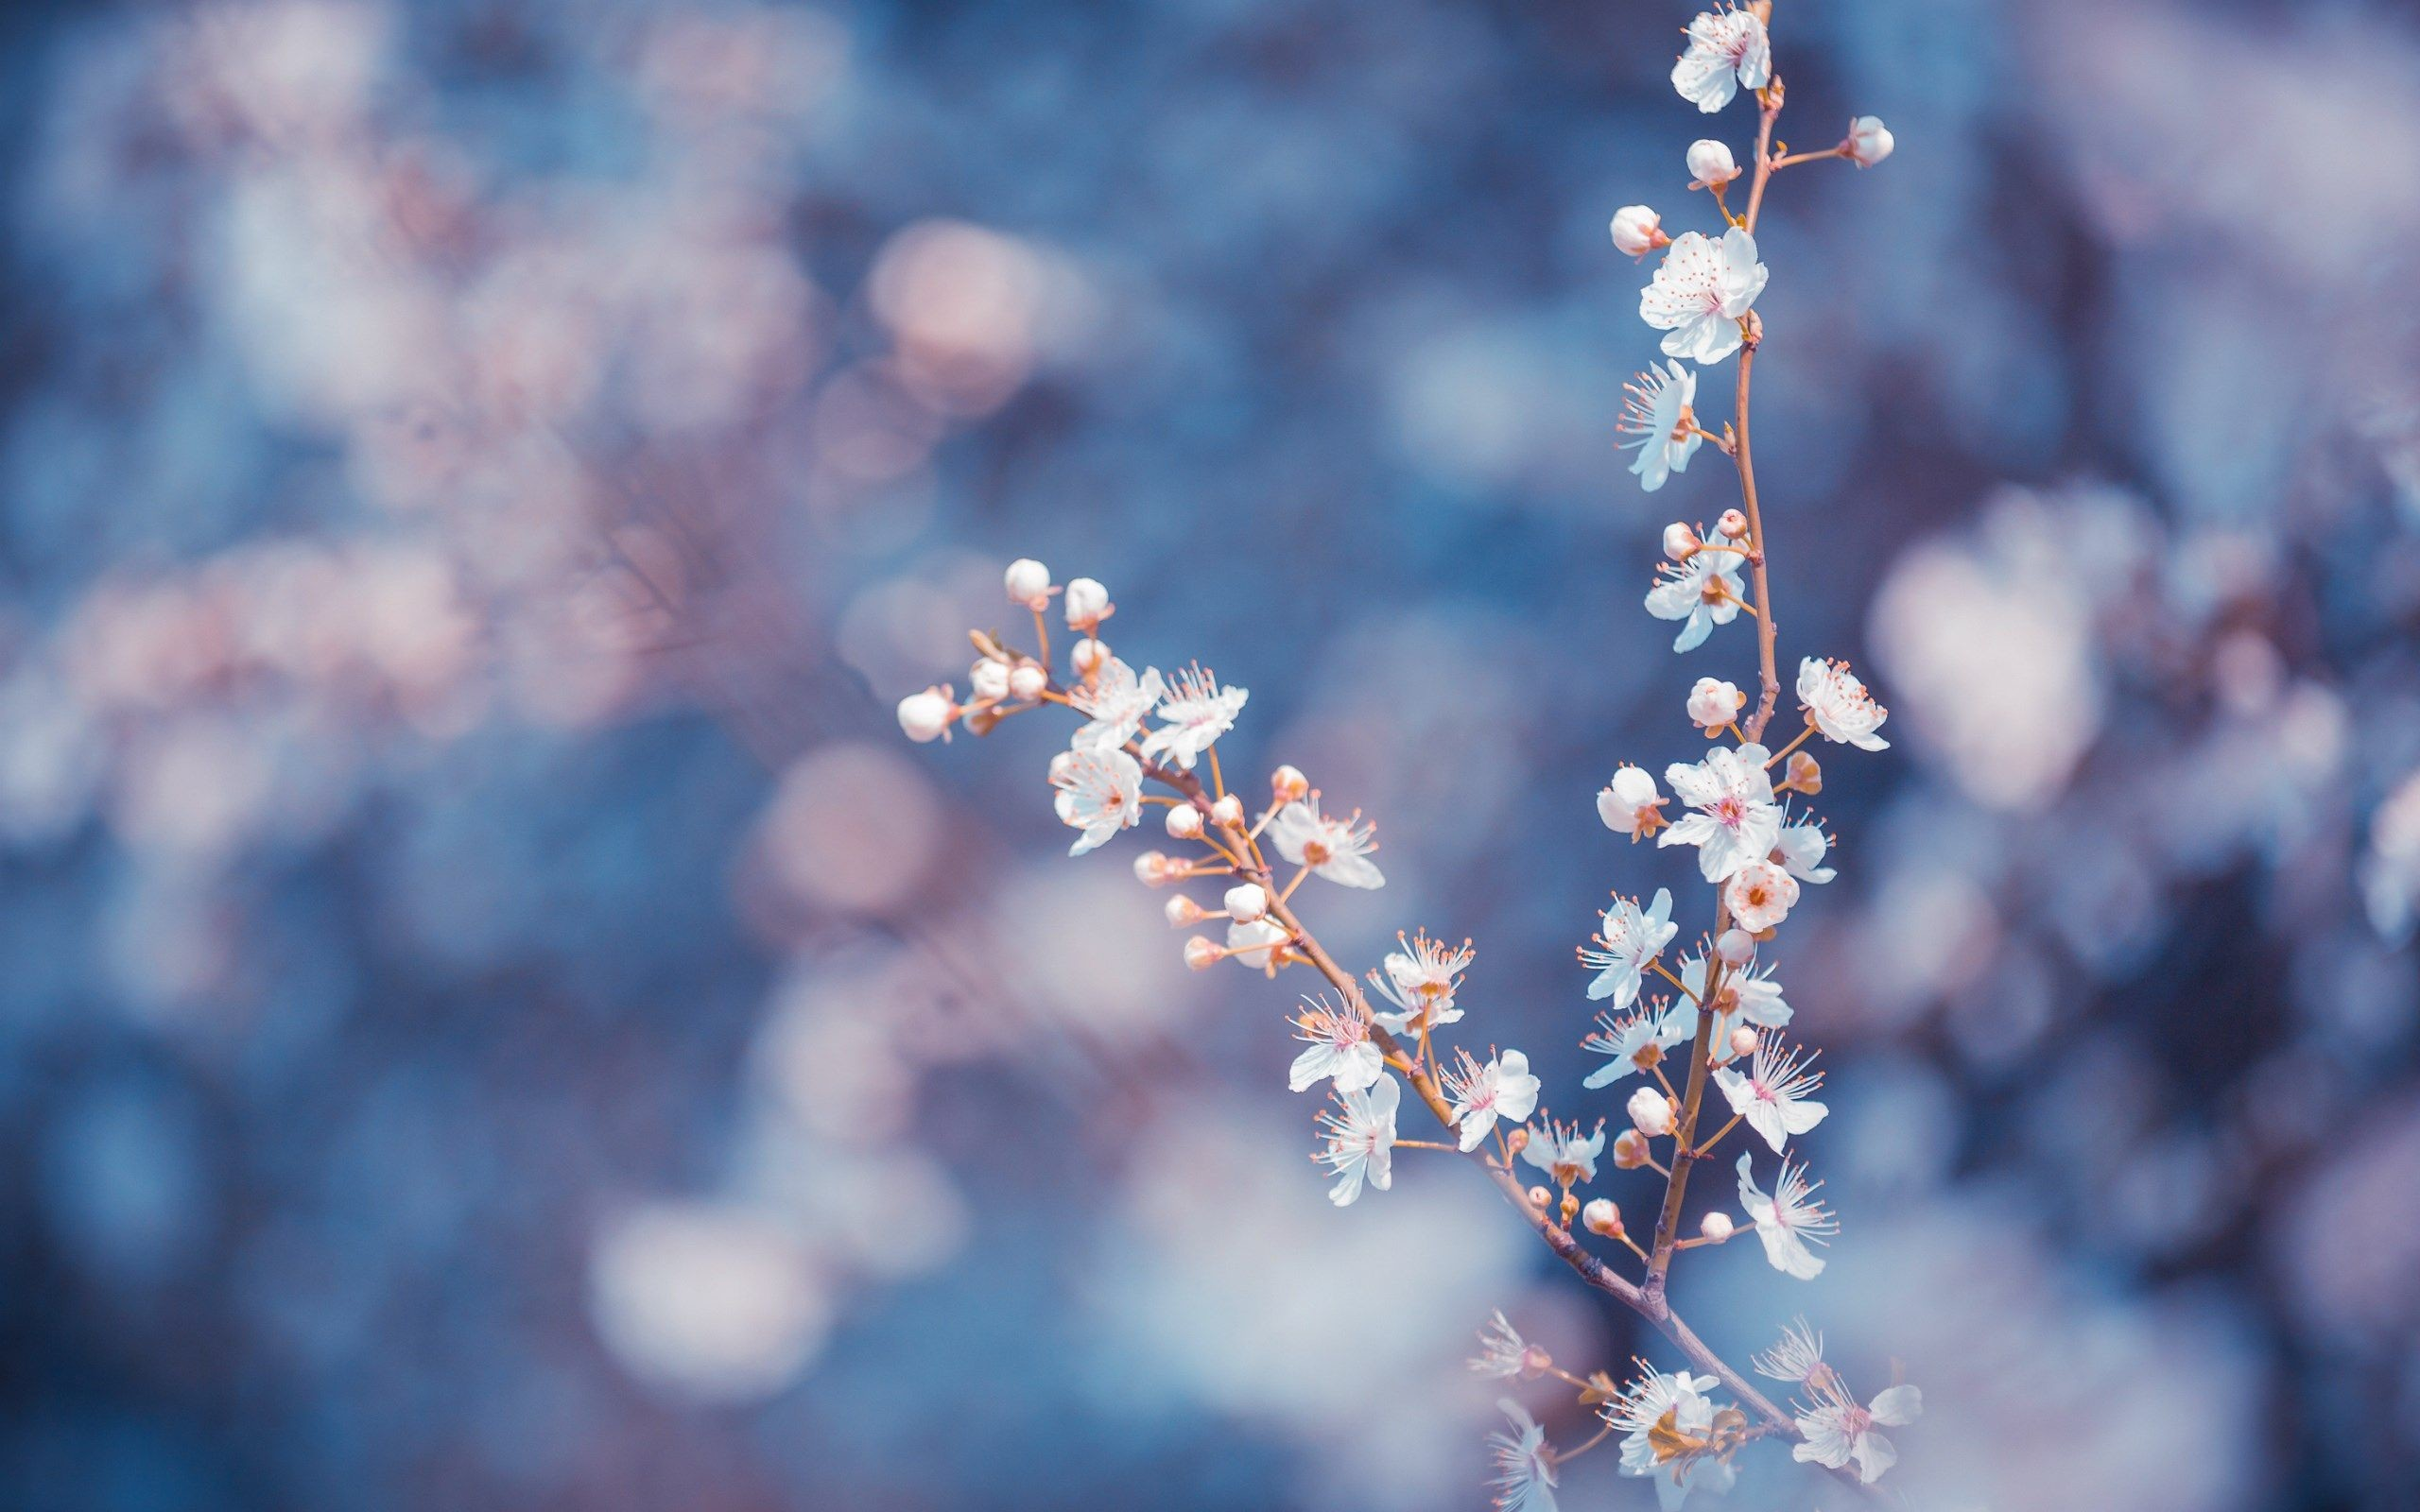 Res: 2560x1600, blue flowers tumblr - Поиск в Google